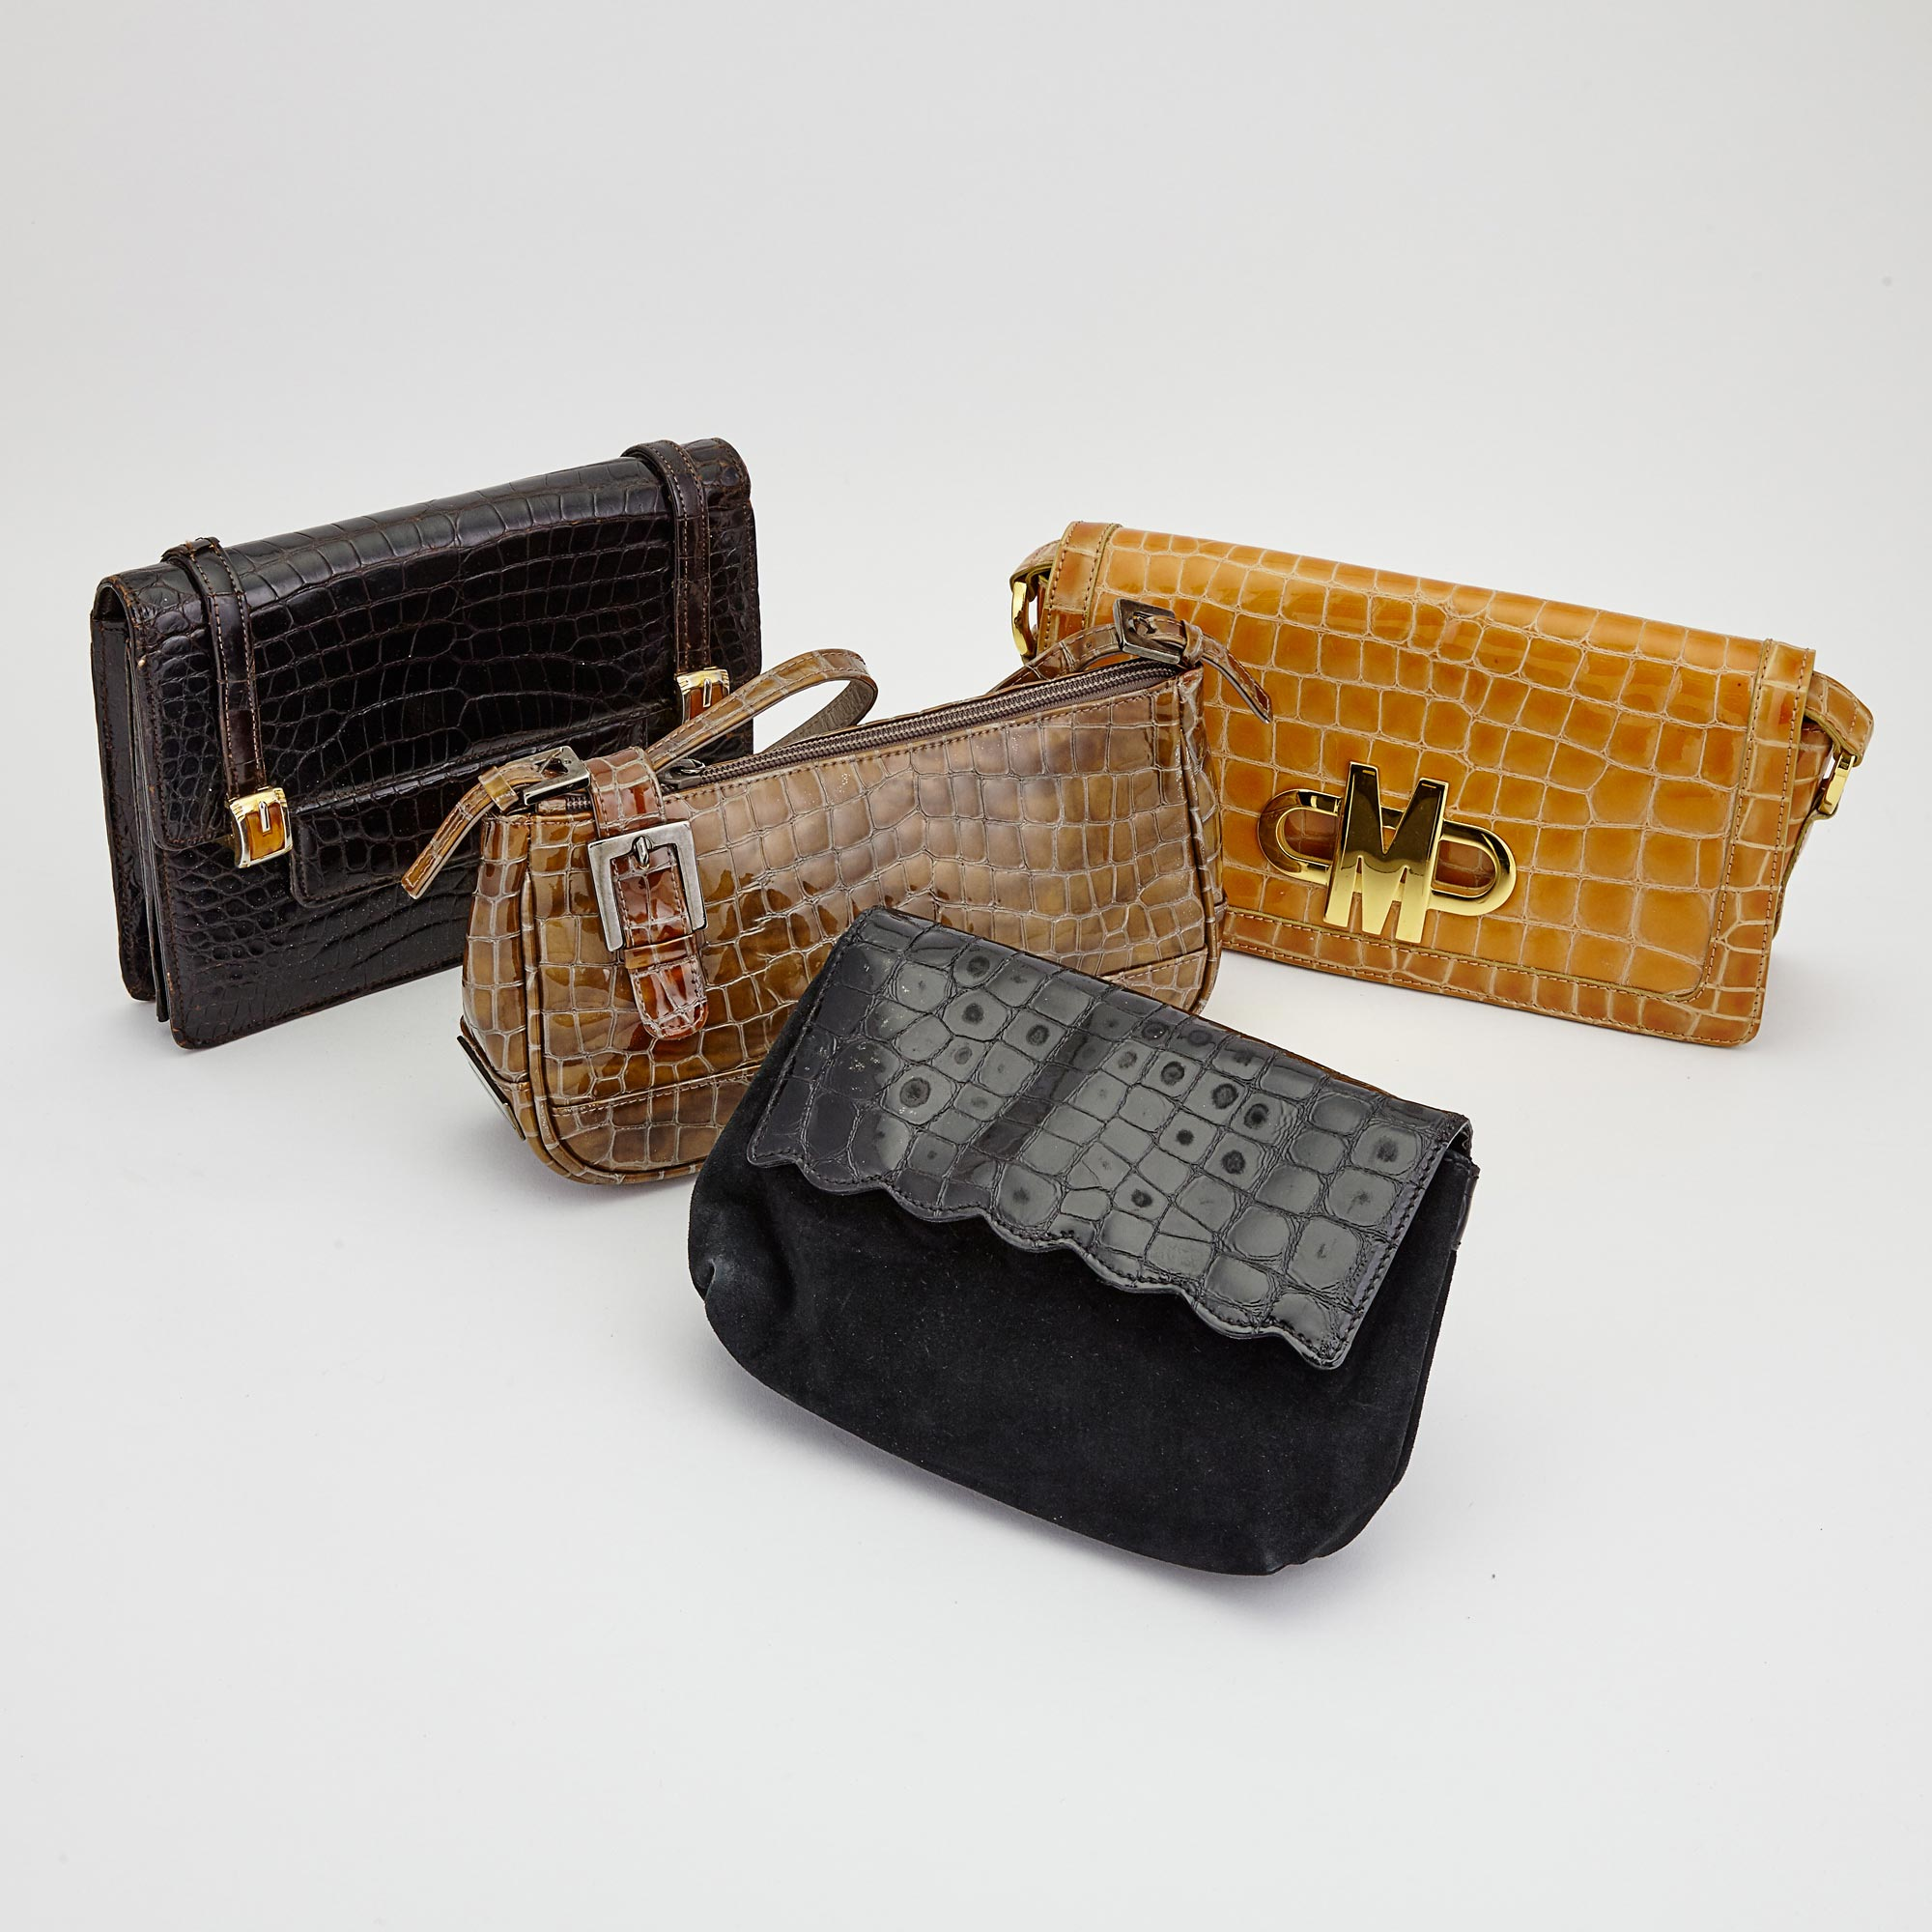 Lot image - Two Alligator Leather Handbags, Moschino and Stuart Weitzman, and Two Clutches, Saks Fifth Avenue and Mangiameli